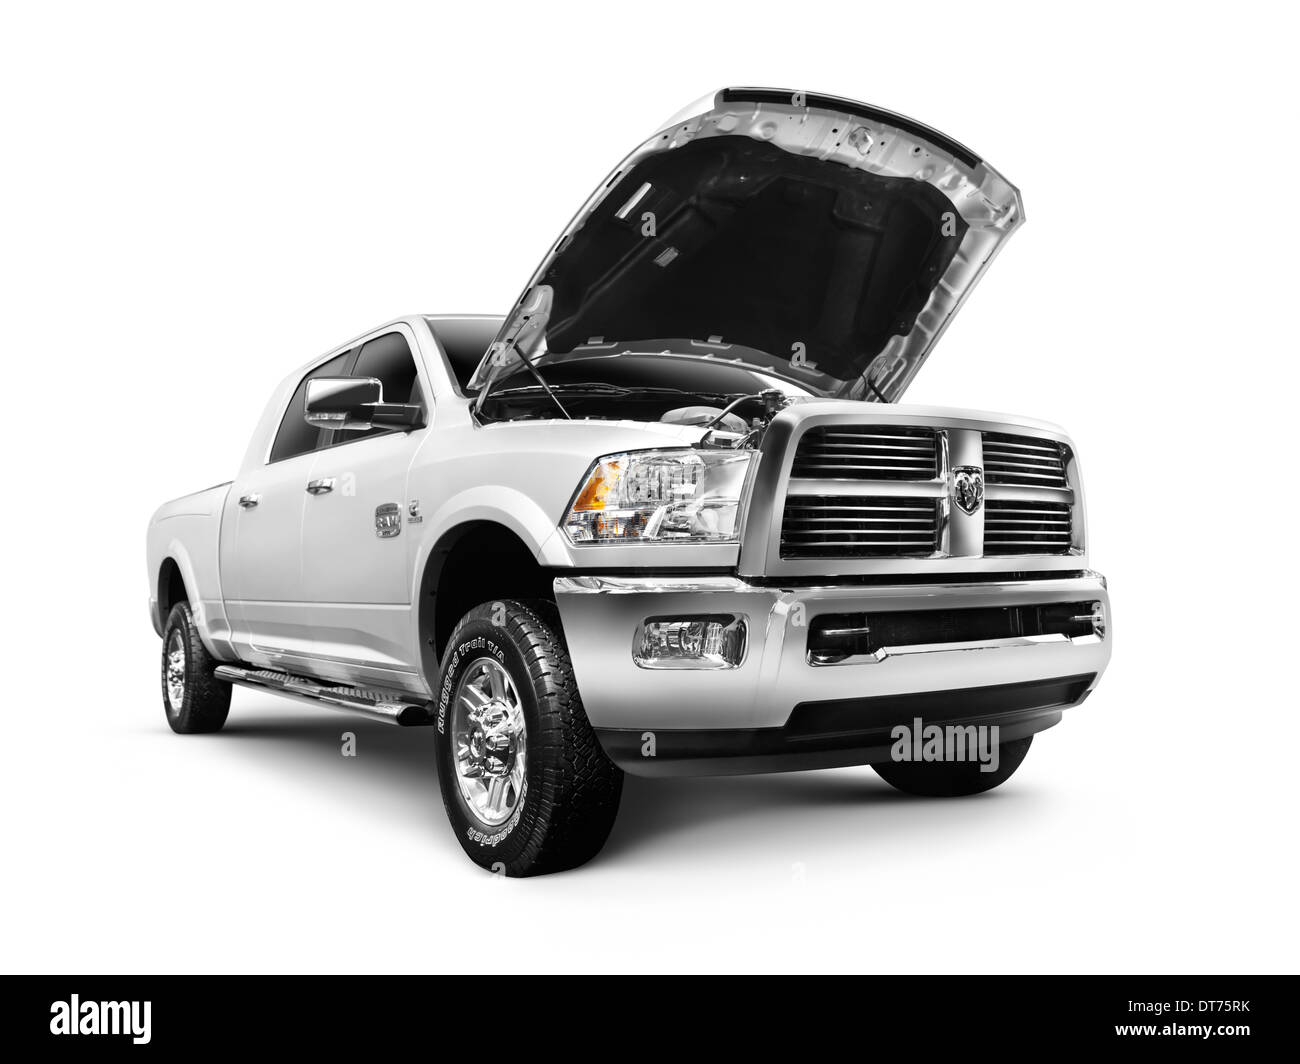 Stock photo white 2012 dodge ram 1500 laramie longhorn pickup truck isolated on white background with clipping path